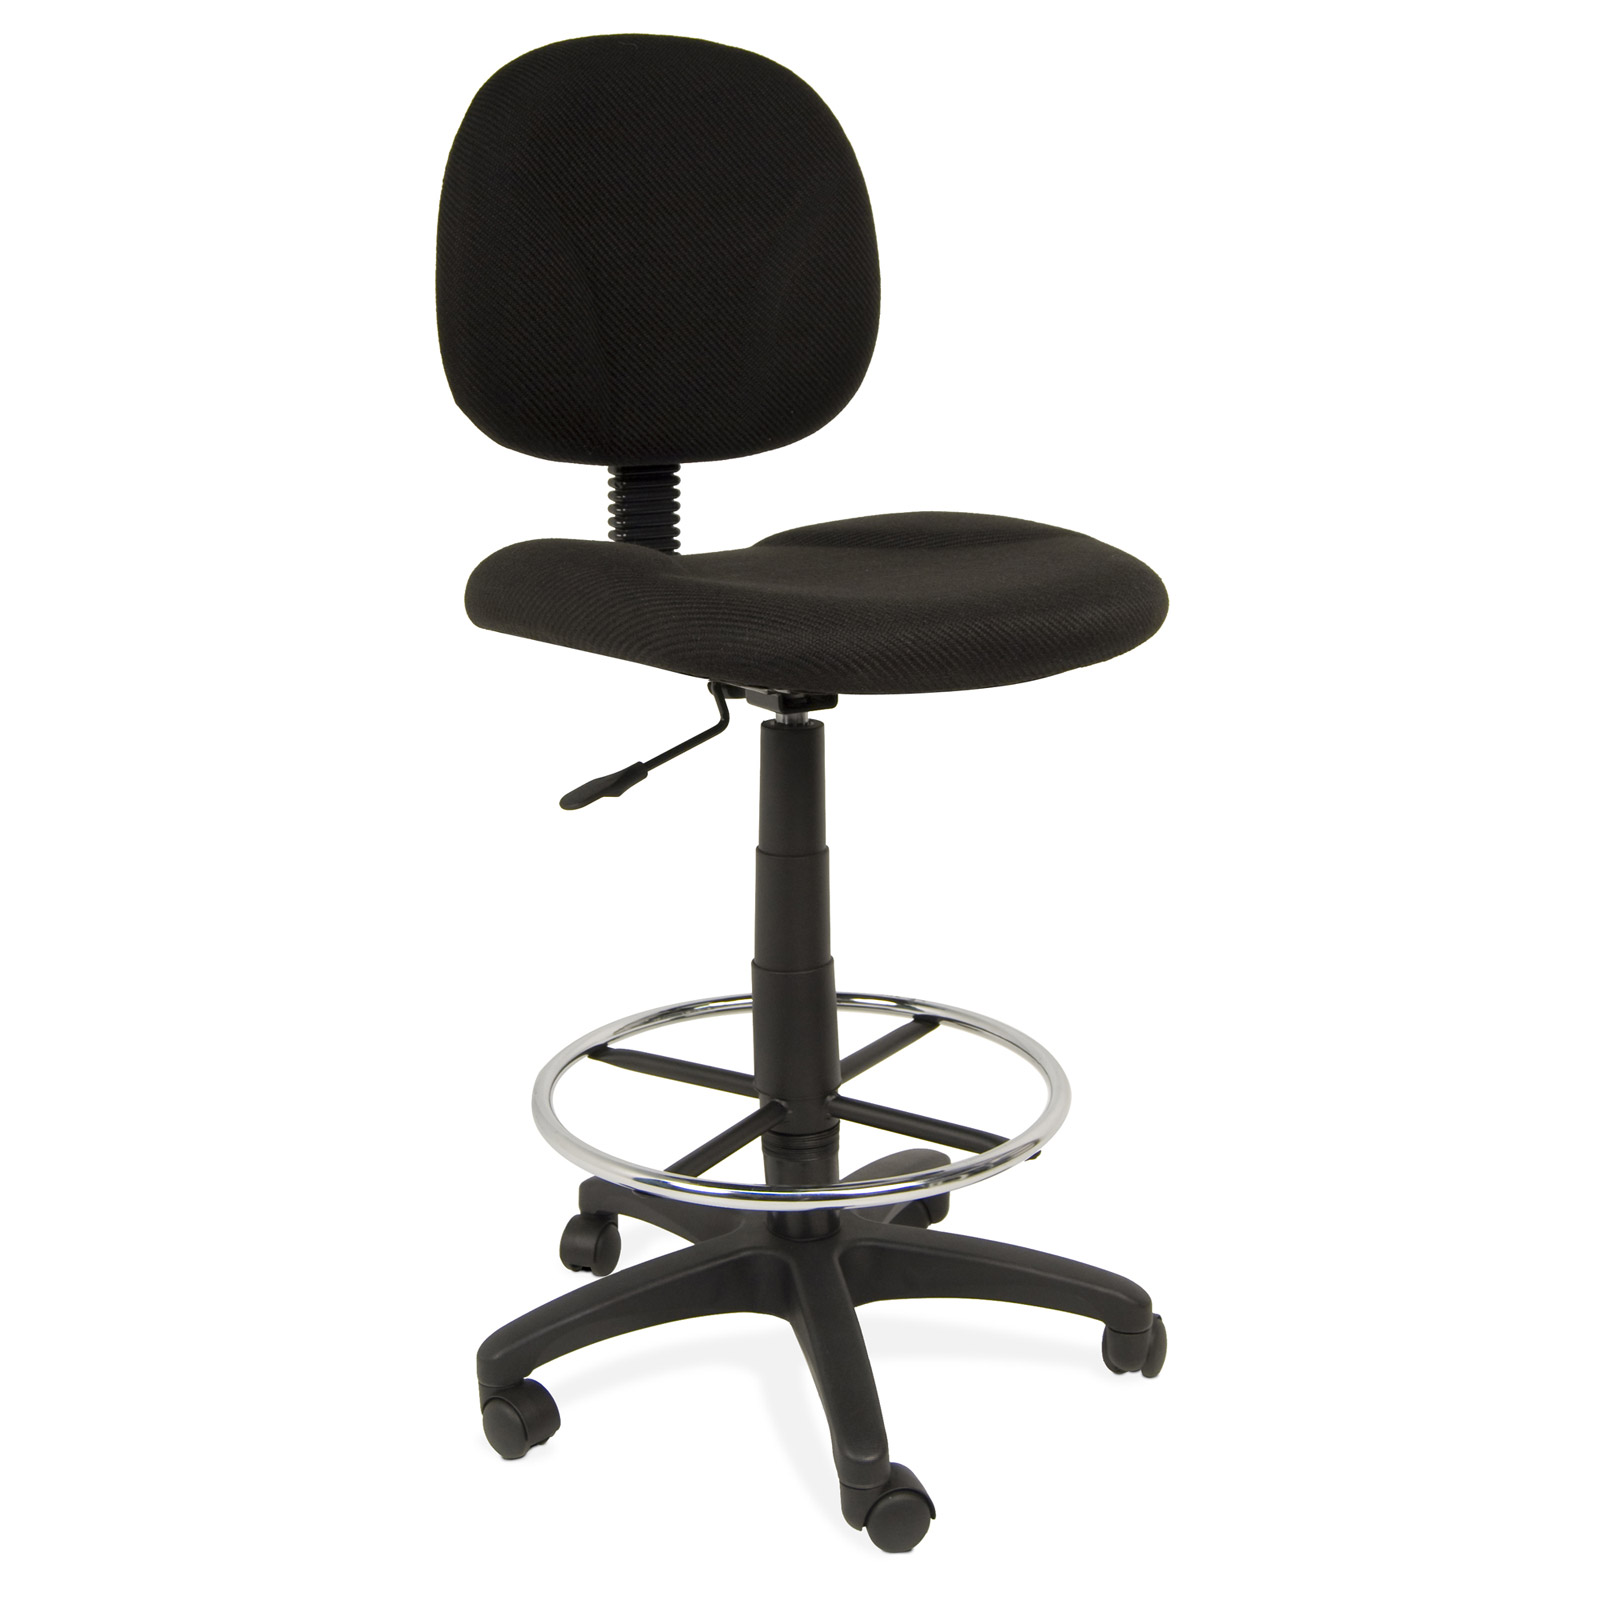 Ergo pro desk chair by studio designs in armless office chairs - Ergo desk chairs ...